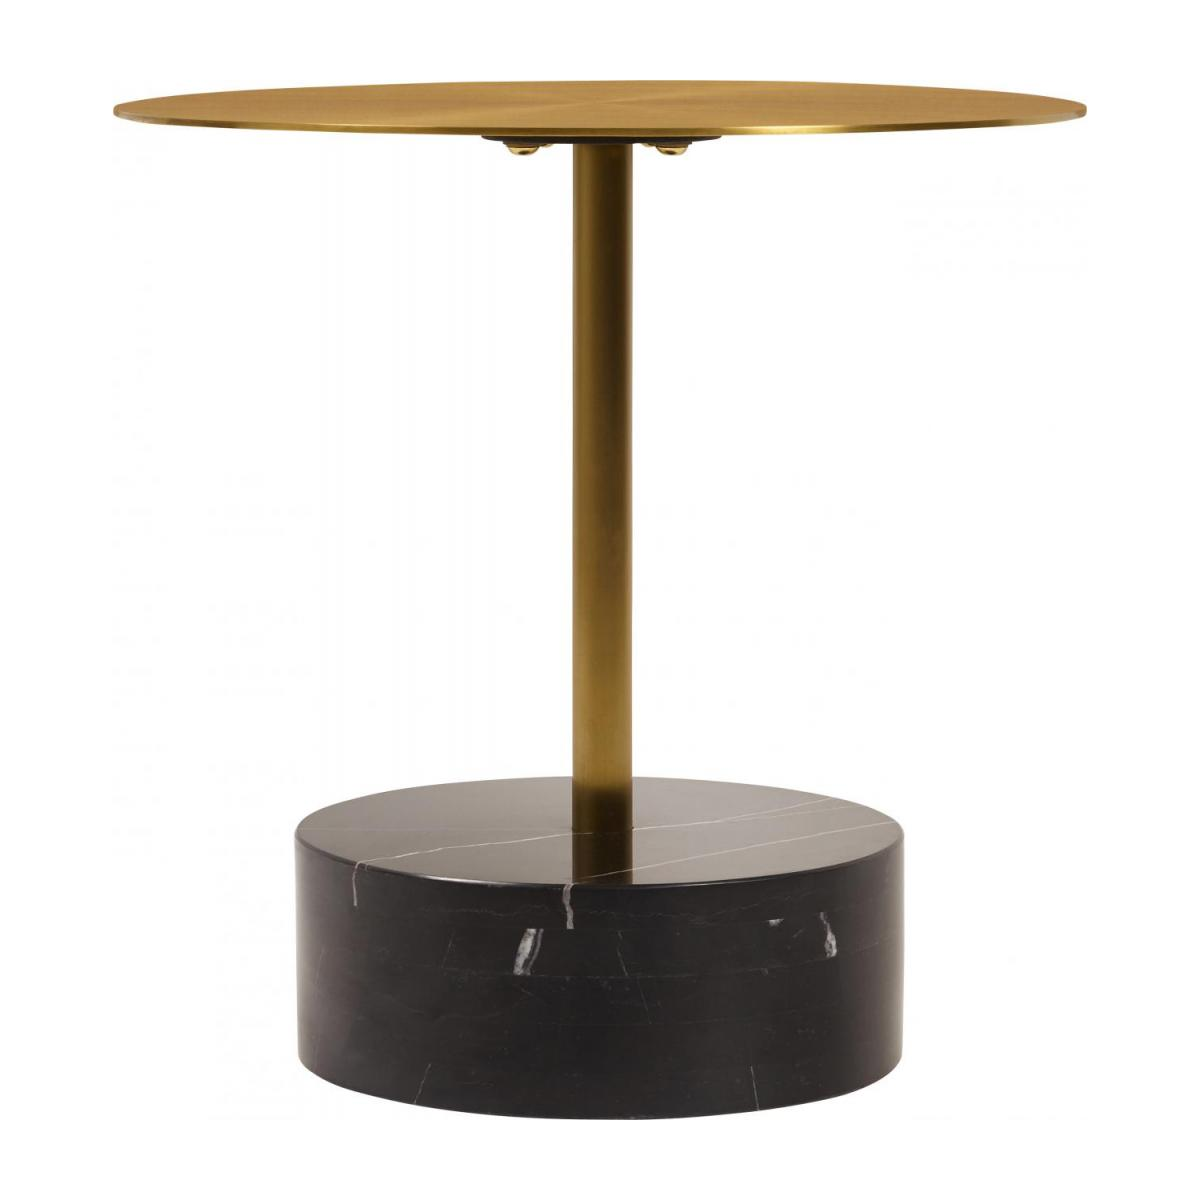 Table D Appoint Marbre.Table D Appoint Ronde Marbre Dore